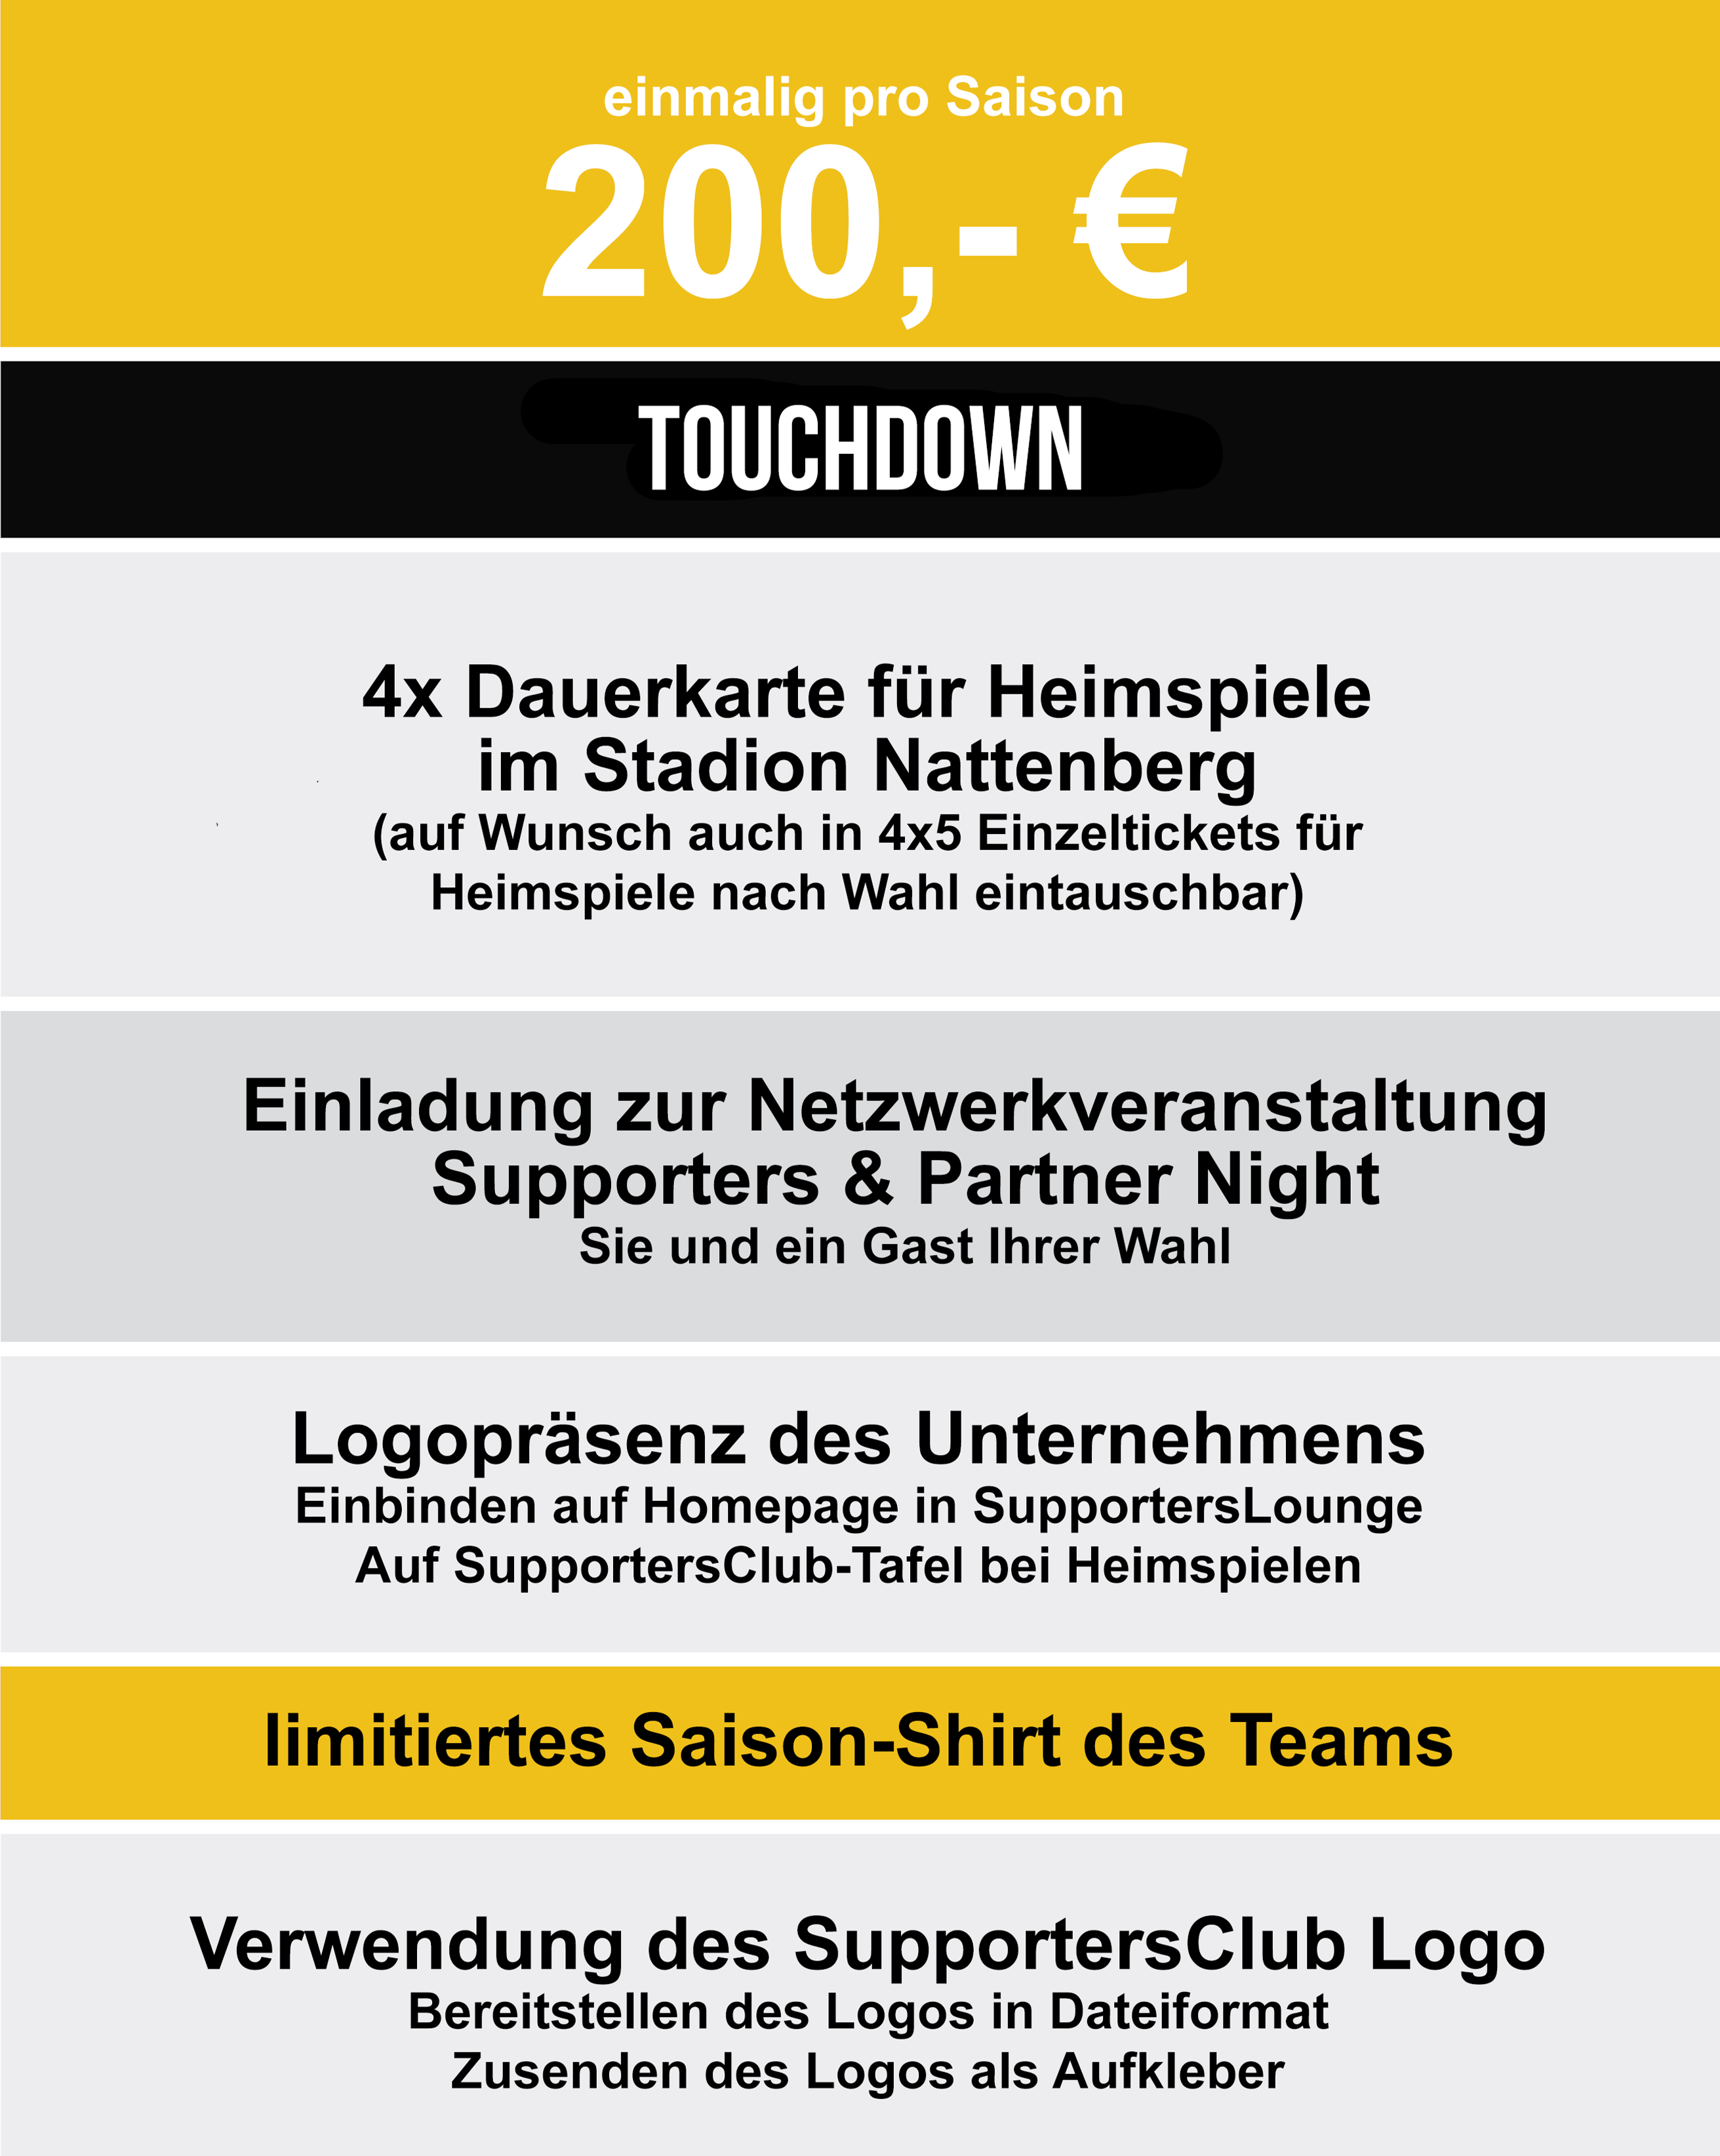 https://lightnings-football.de/wp-content/uploads/2021/01/Touchdown-Paket.png